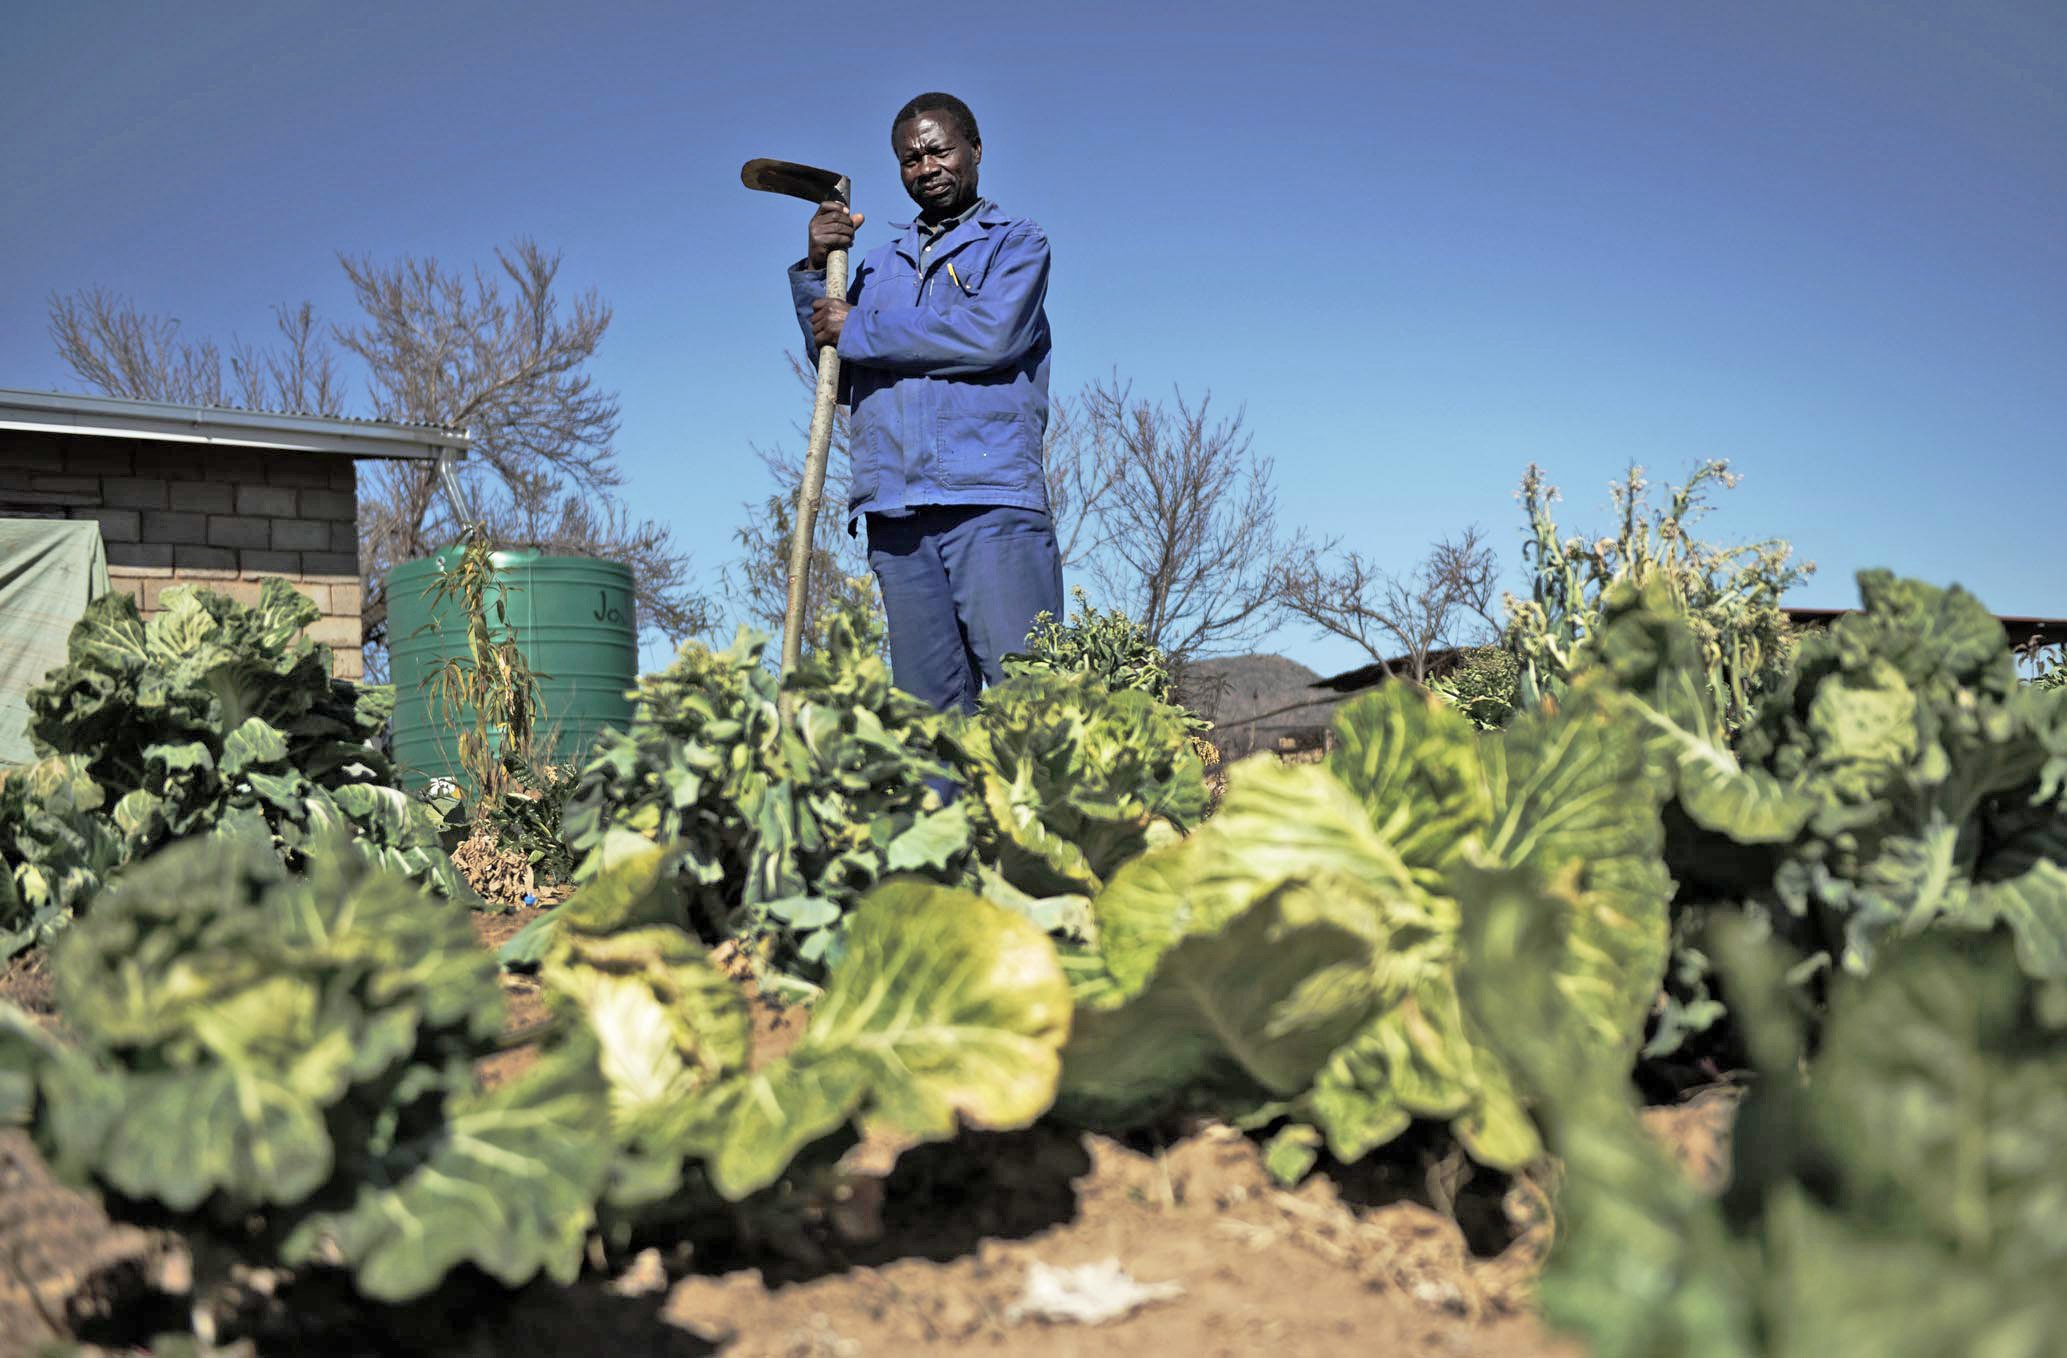 Moorosi Nchejana is one of 40 farmers in the village of Mabalane in Lesotho's Mohale's Hoek district who participated in a pilot programme by the UN's Food and Agriculture Organization to strengthen farmers' capacity to adapt to climate change  (J